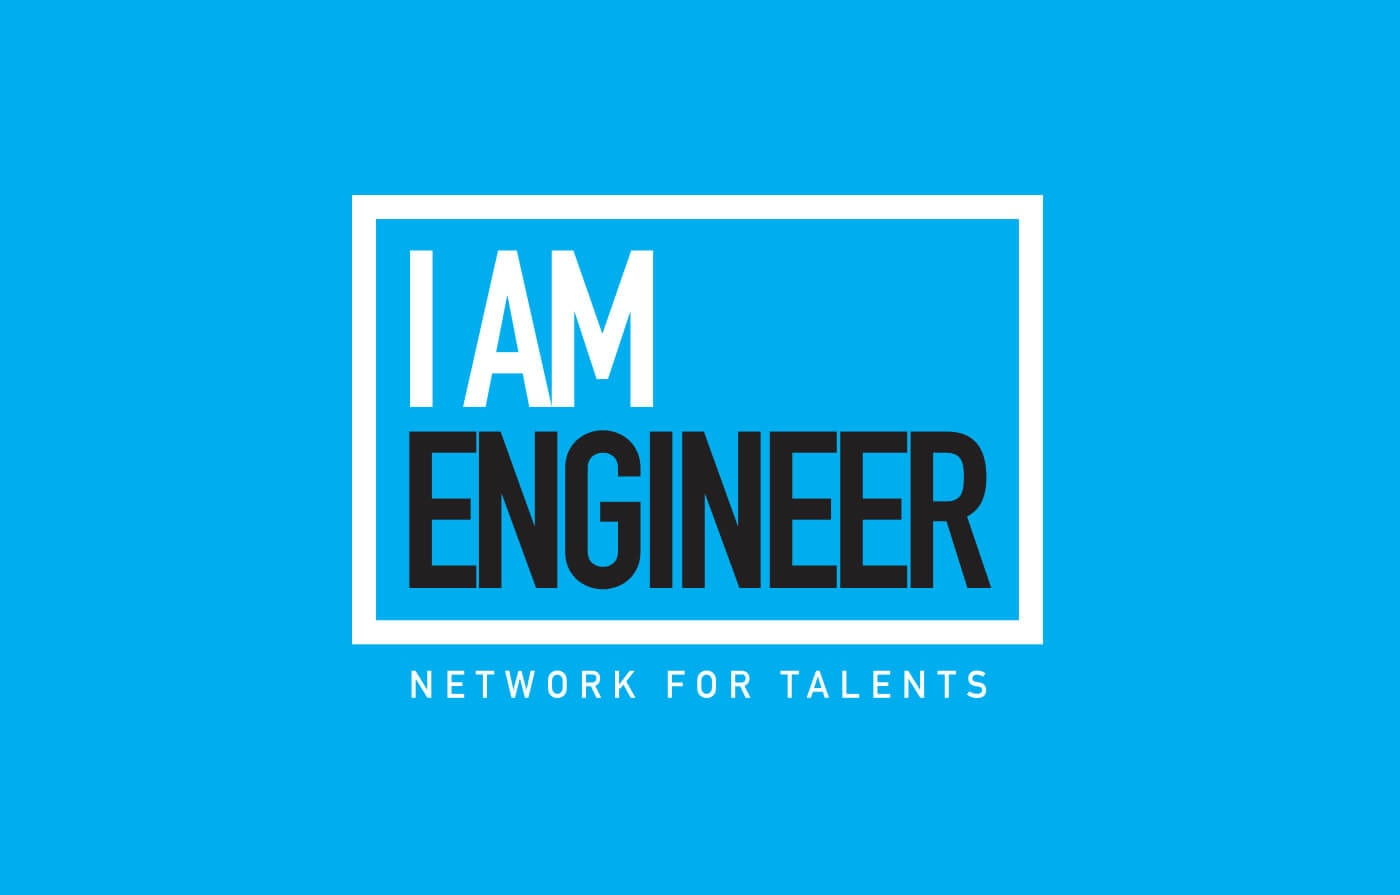 2013 I AM Engineer logo